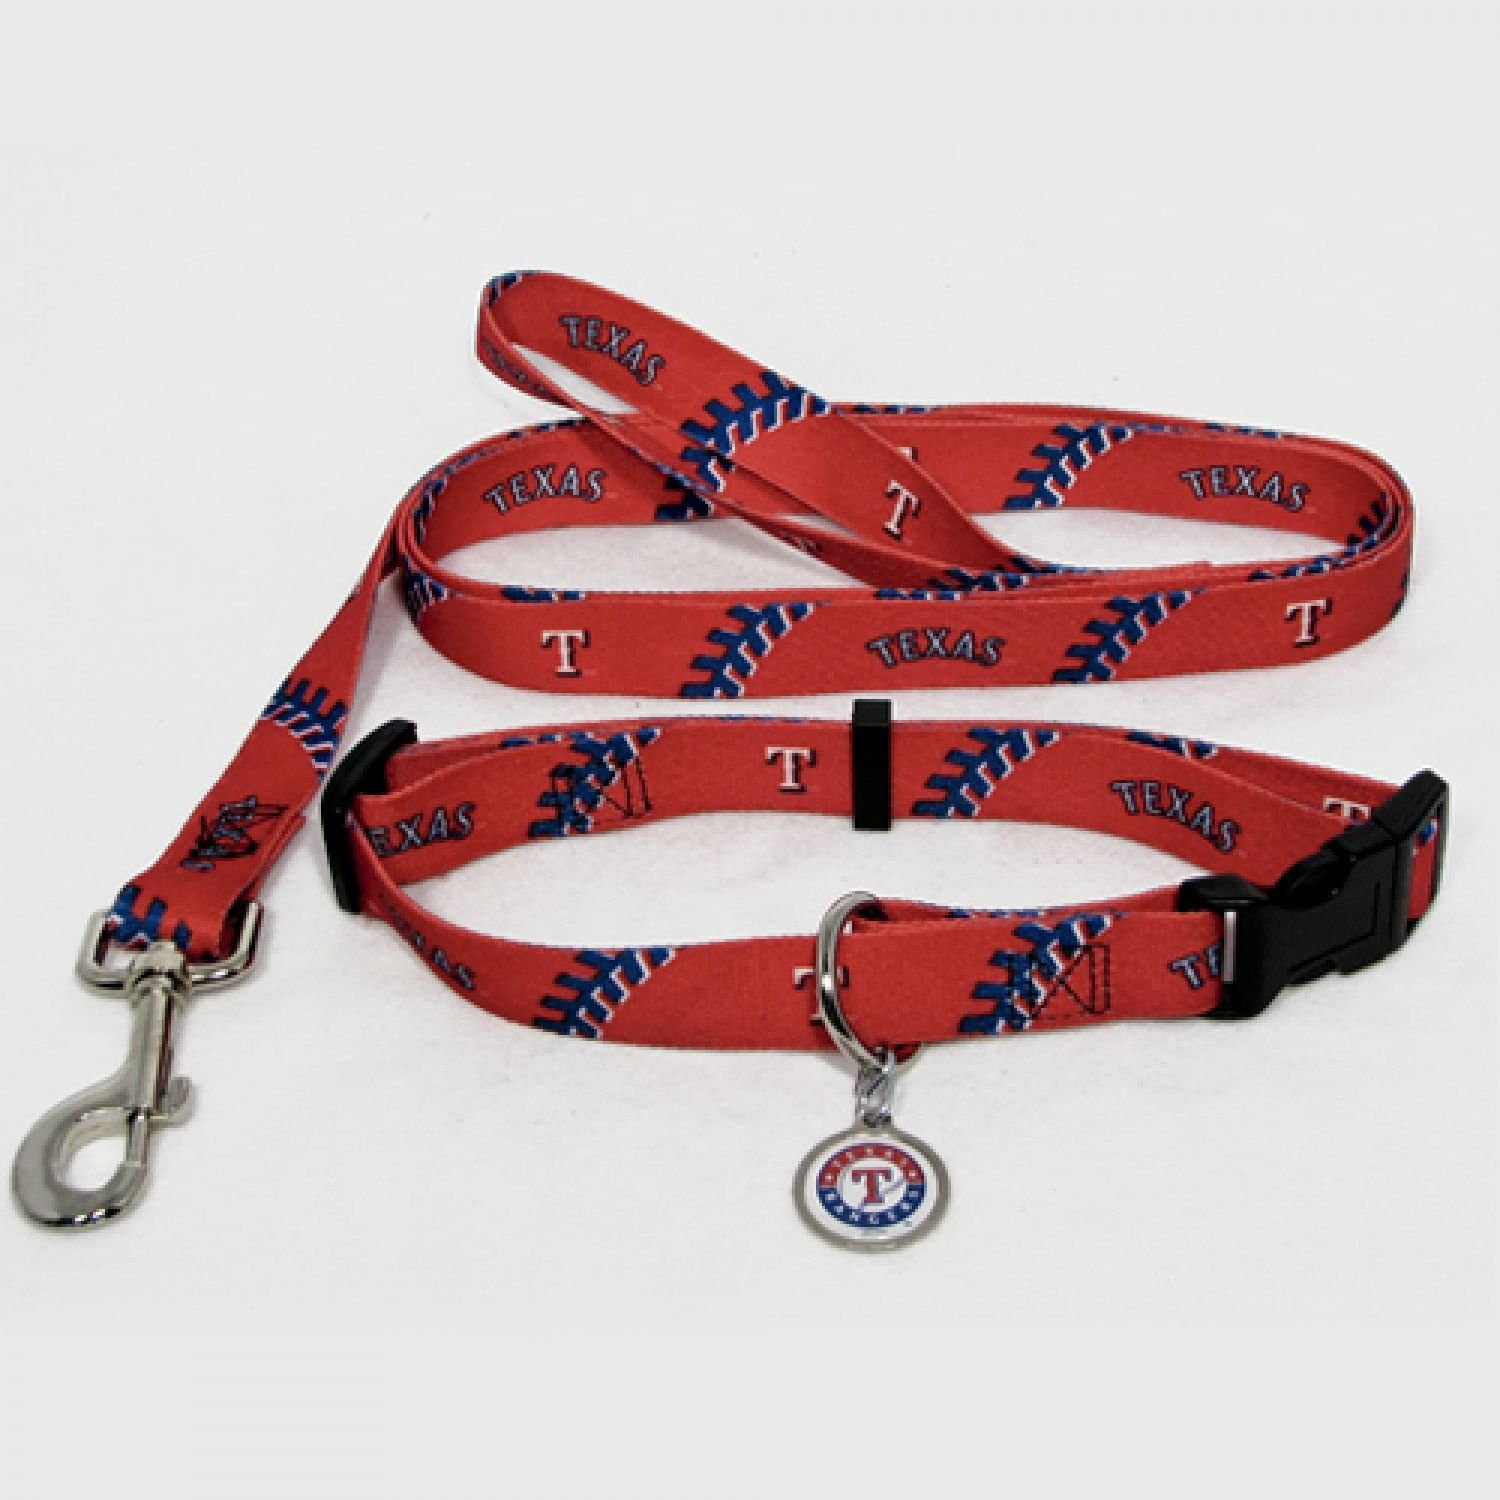 HUNTER Texas Rangers Collar Lead free and Tag Set Pets ID for Charlotte Mall Combo